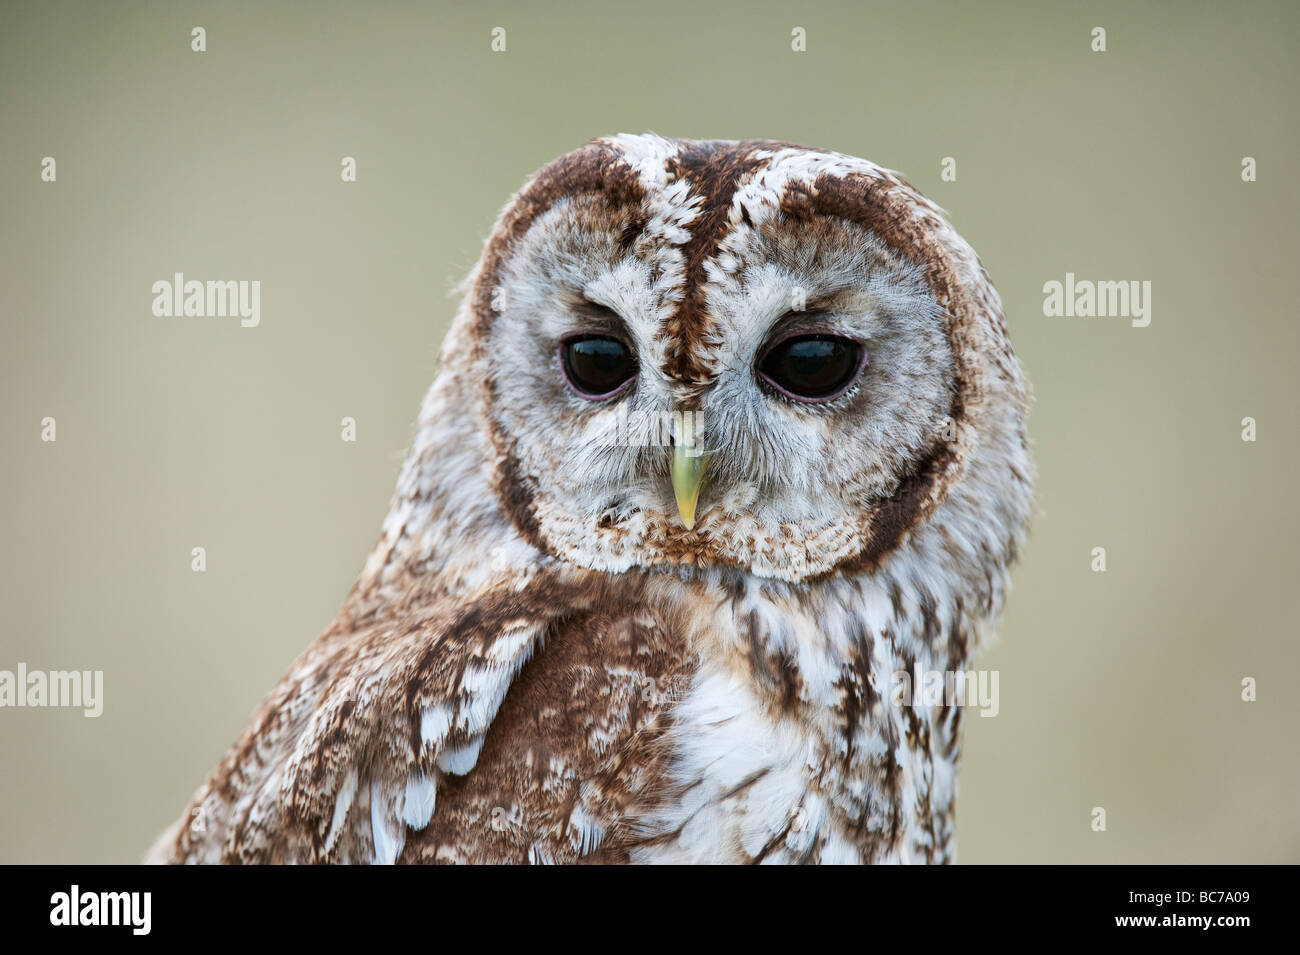 Strix aluco. Tawny owl in the english countryside - Stock Image